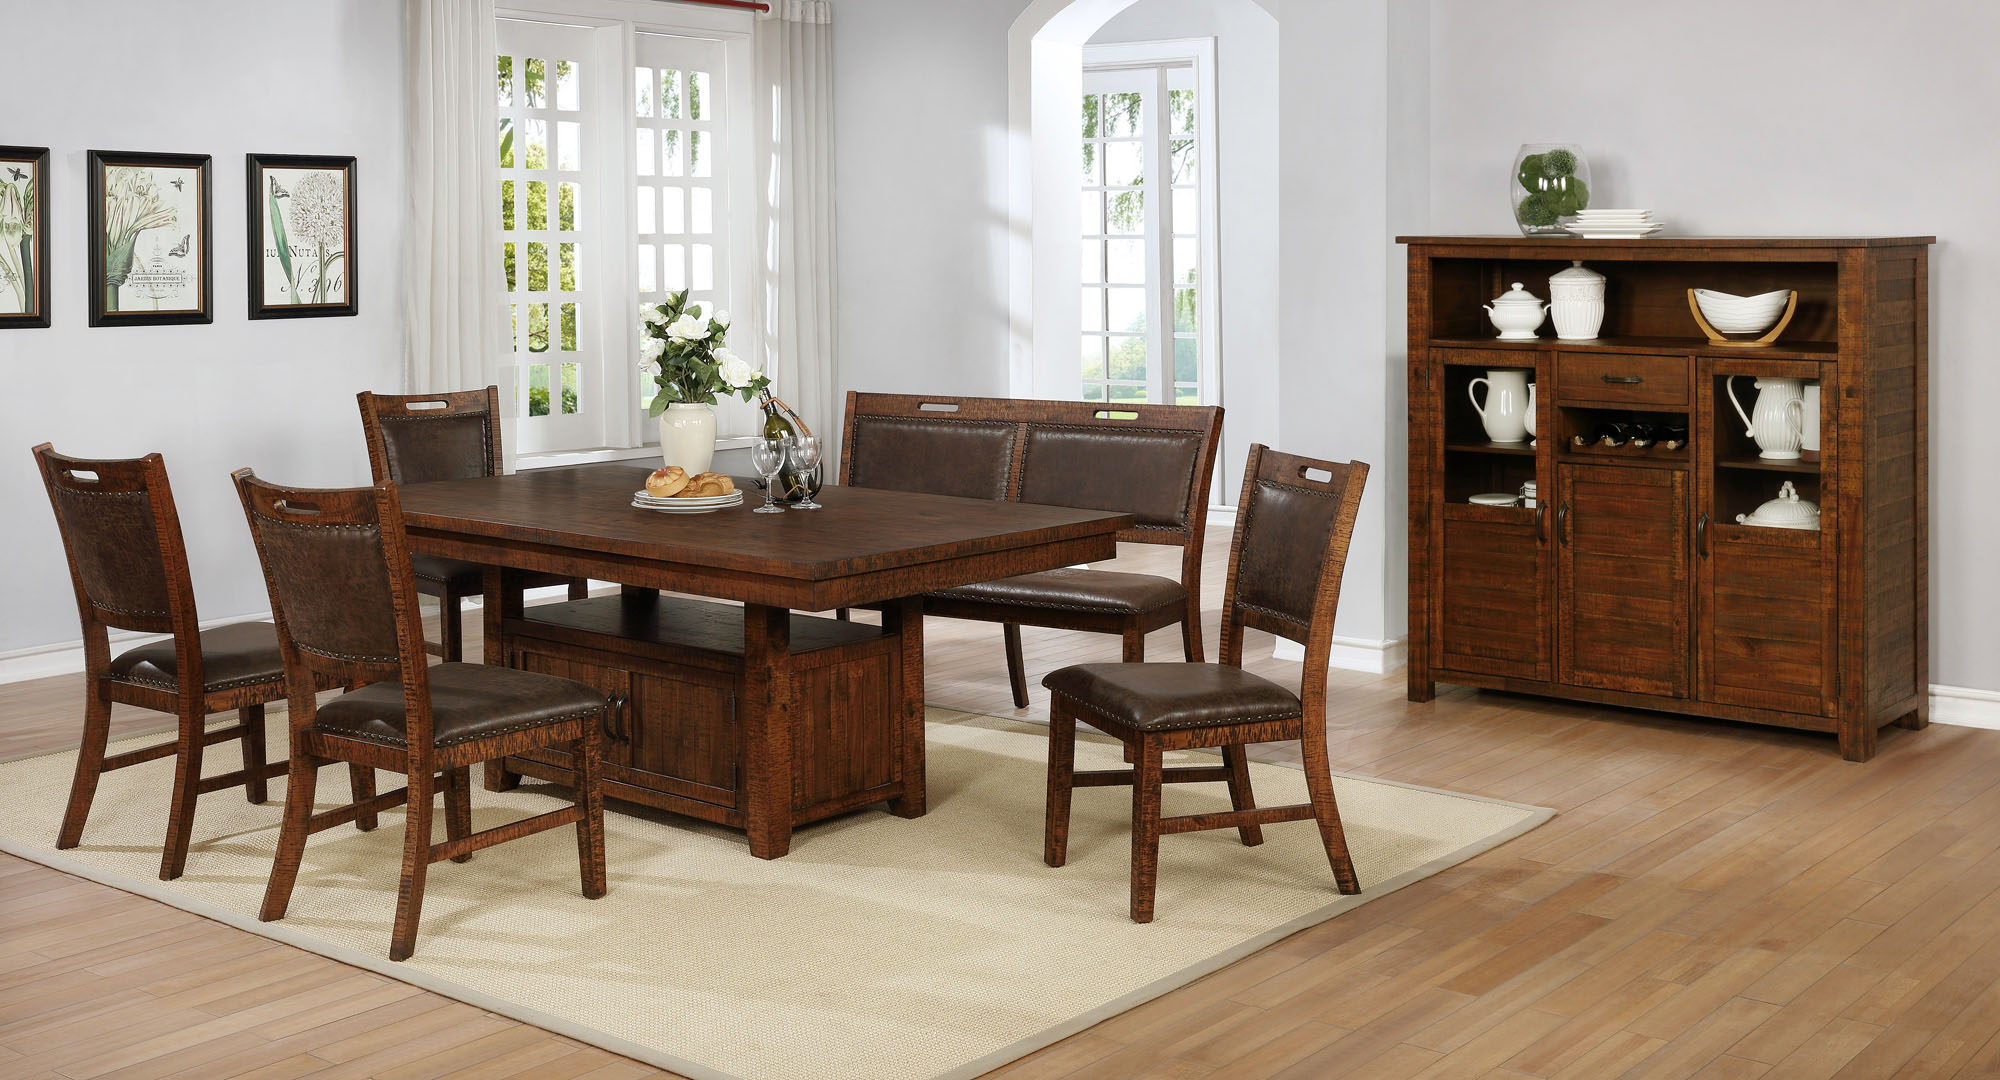 1842 Jonah 6pc Dining Collection: 7pc Set - Table & 6 Chairs $959.99